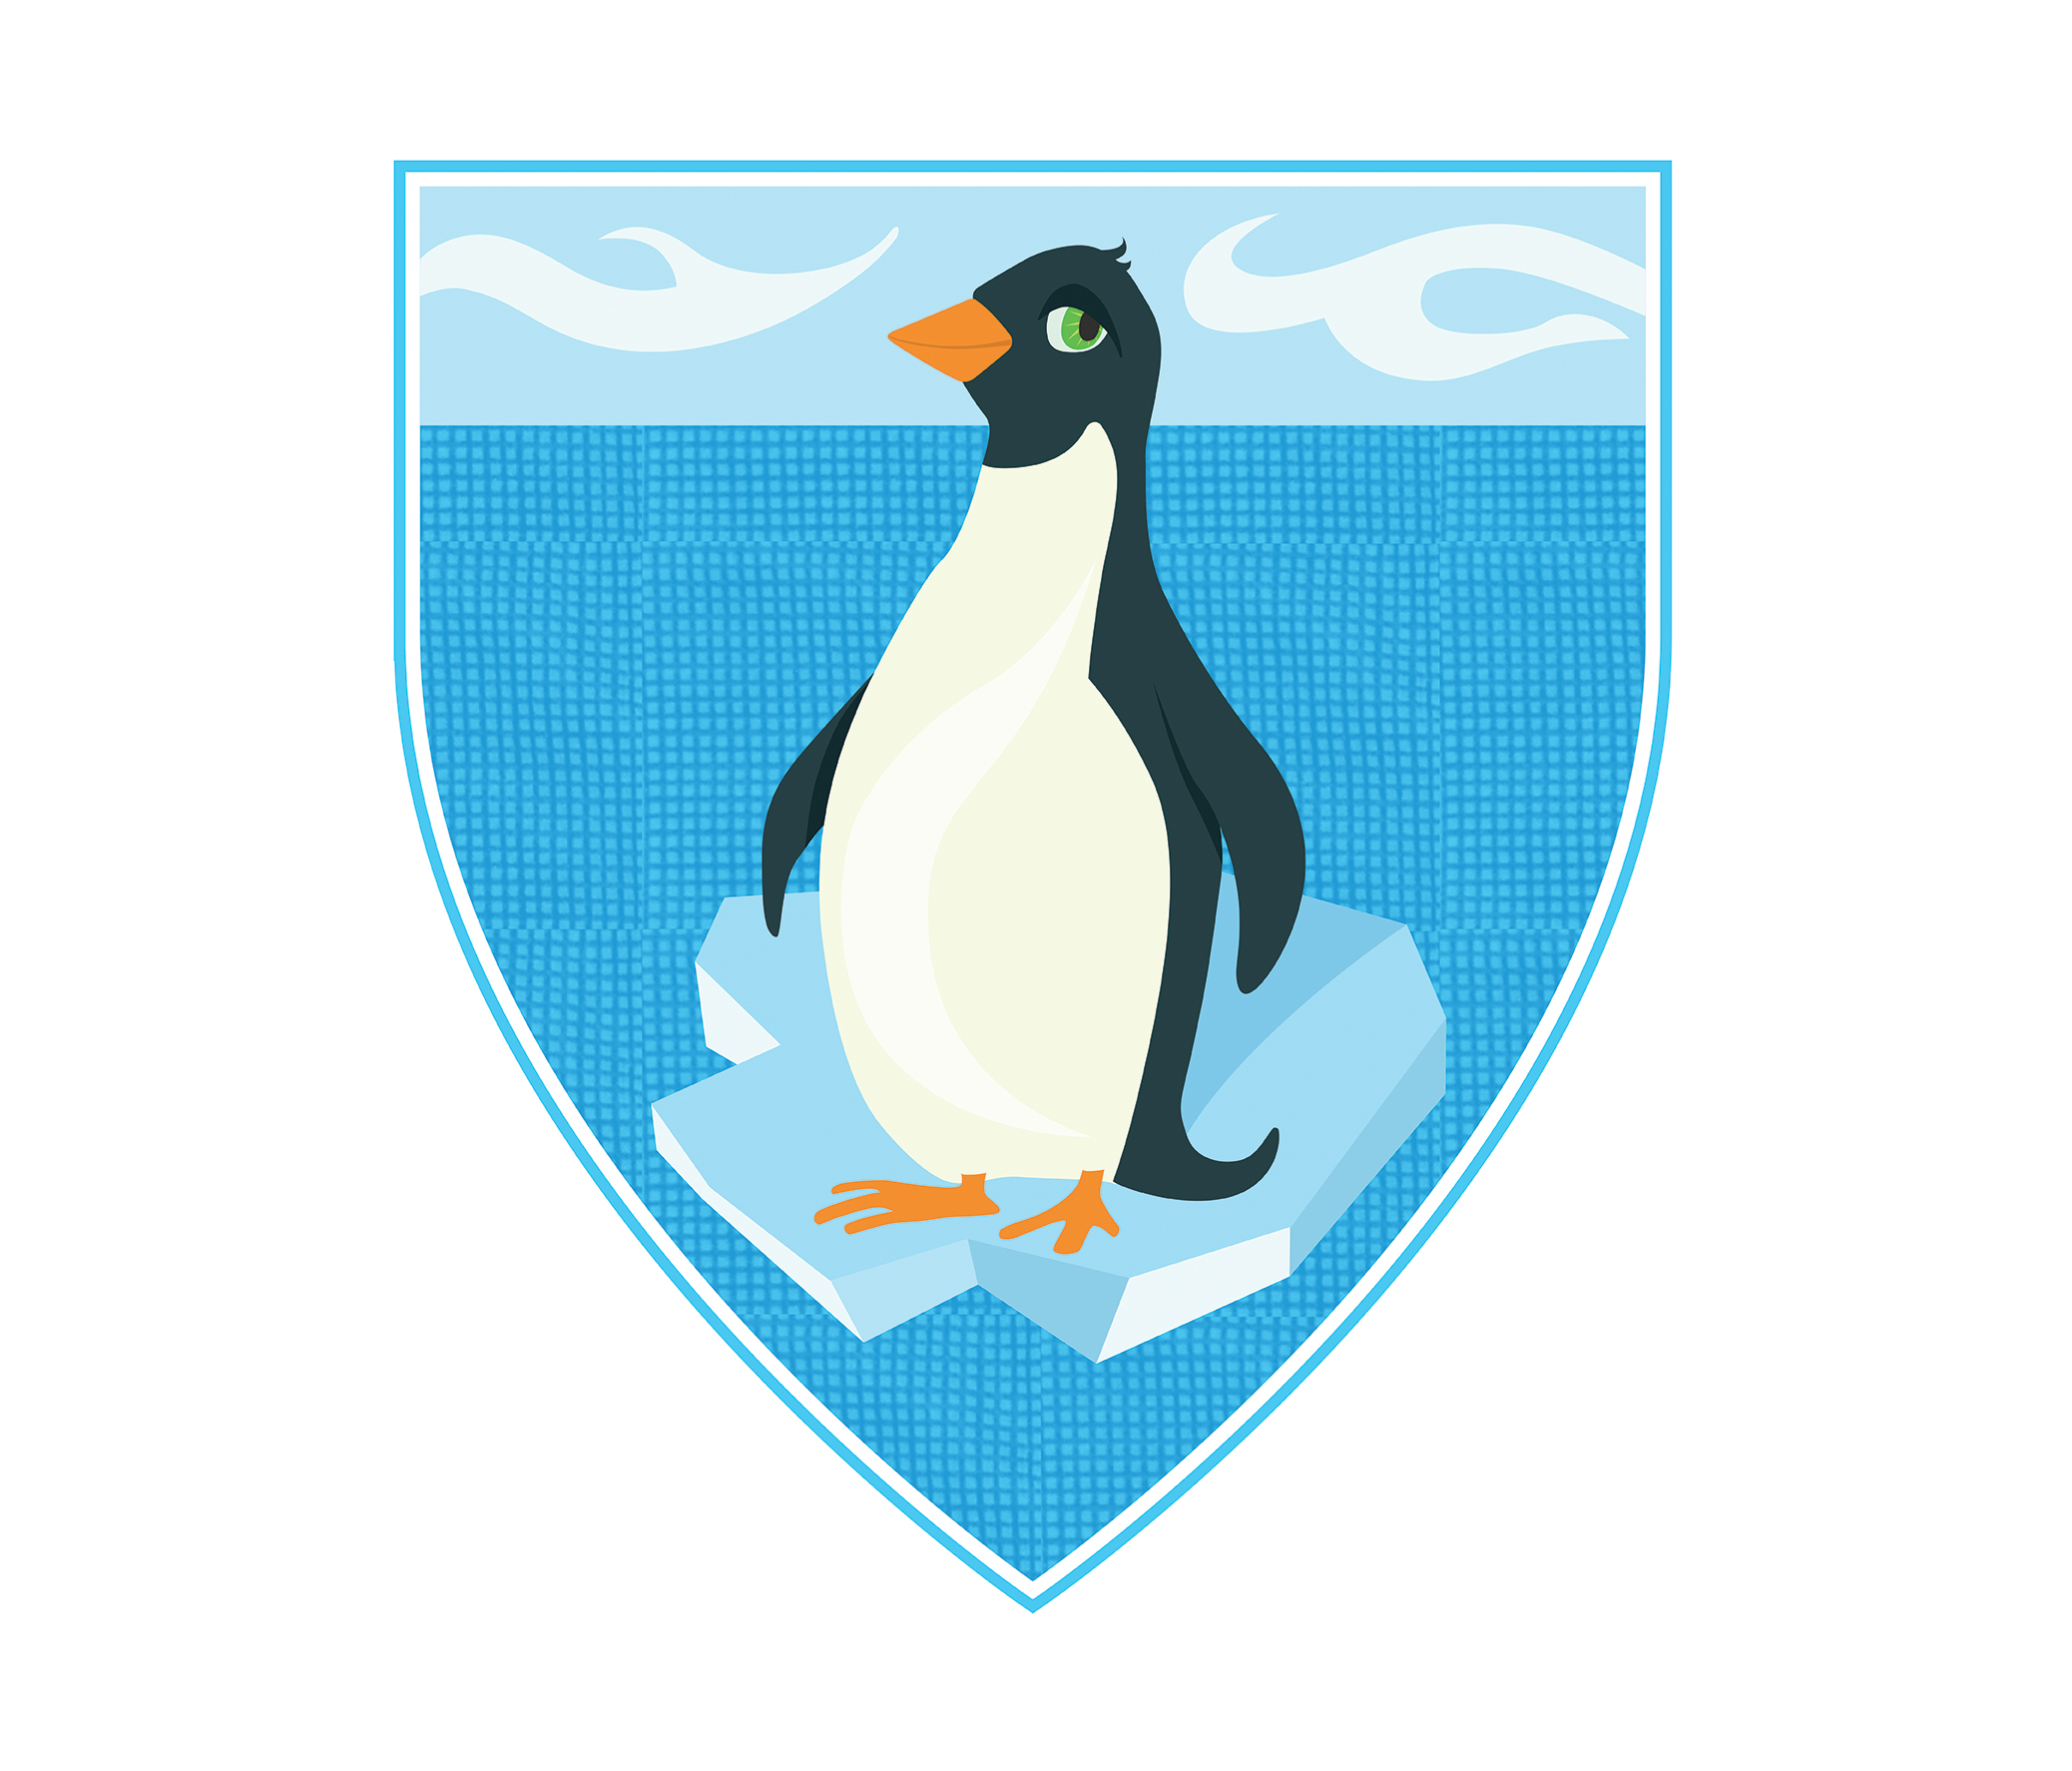 yt_penguin_badge.jpg